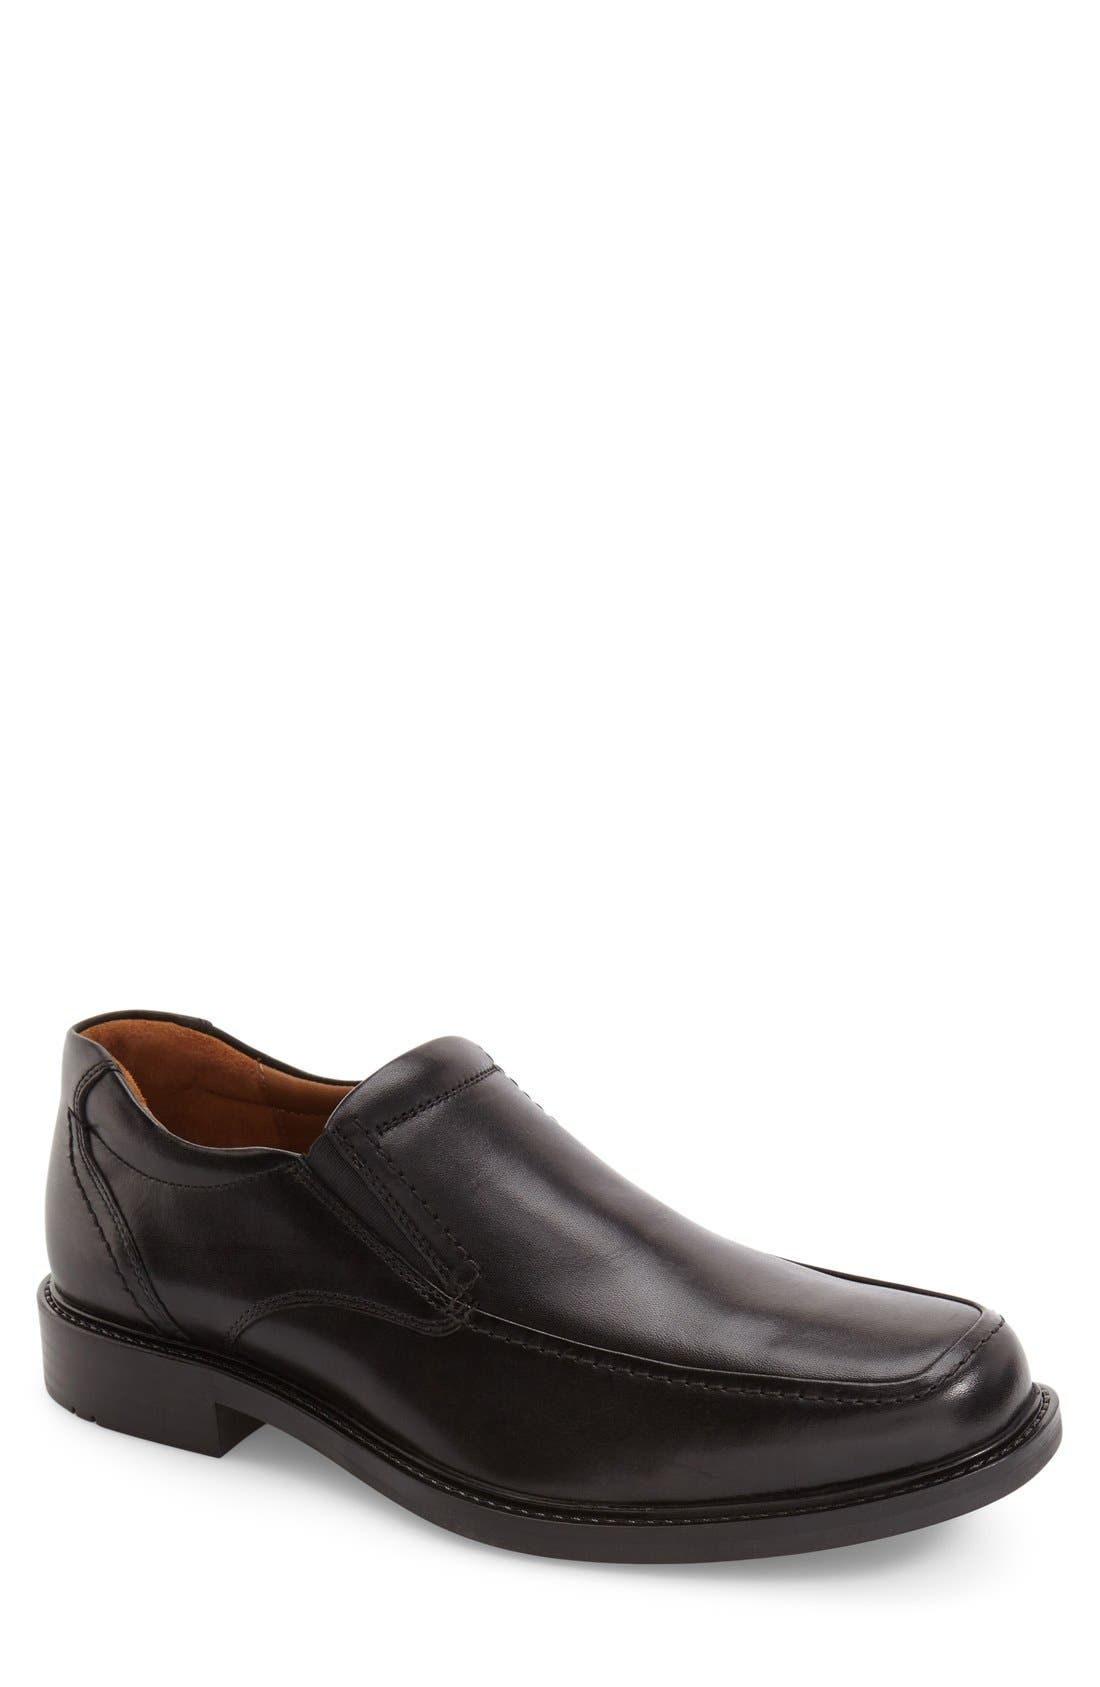 Johnston & Murphy Tabor Venetian Loafer (Men)